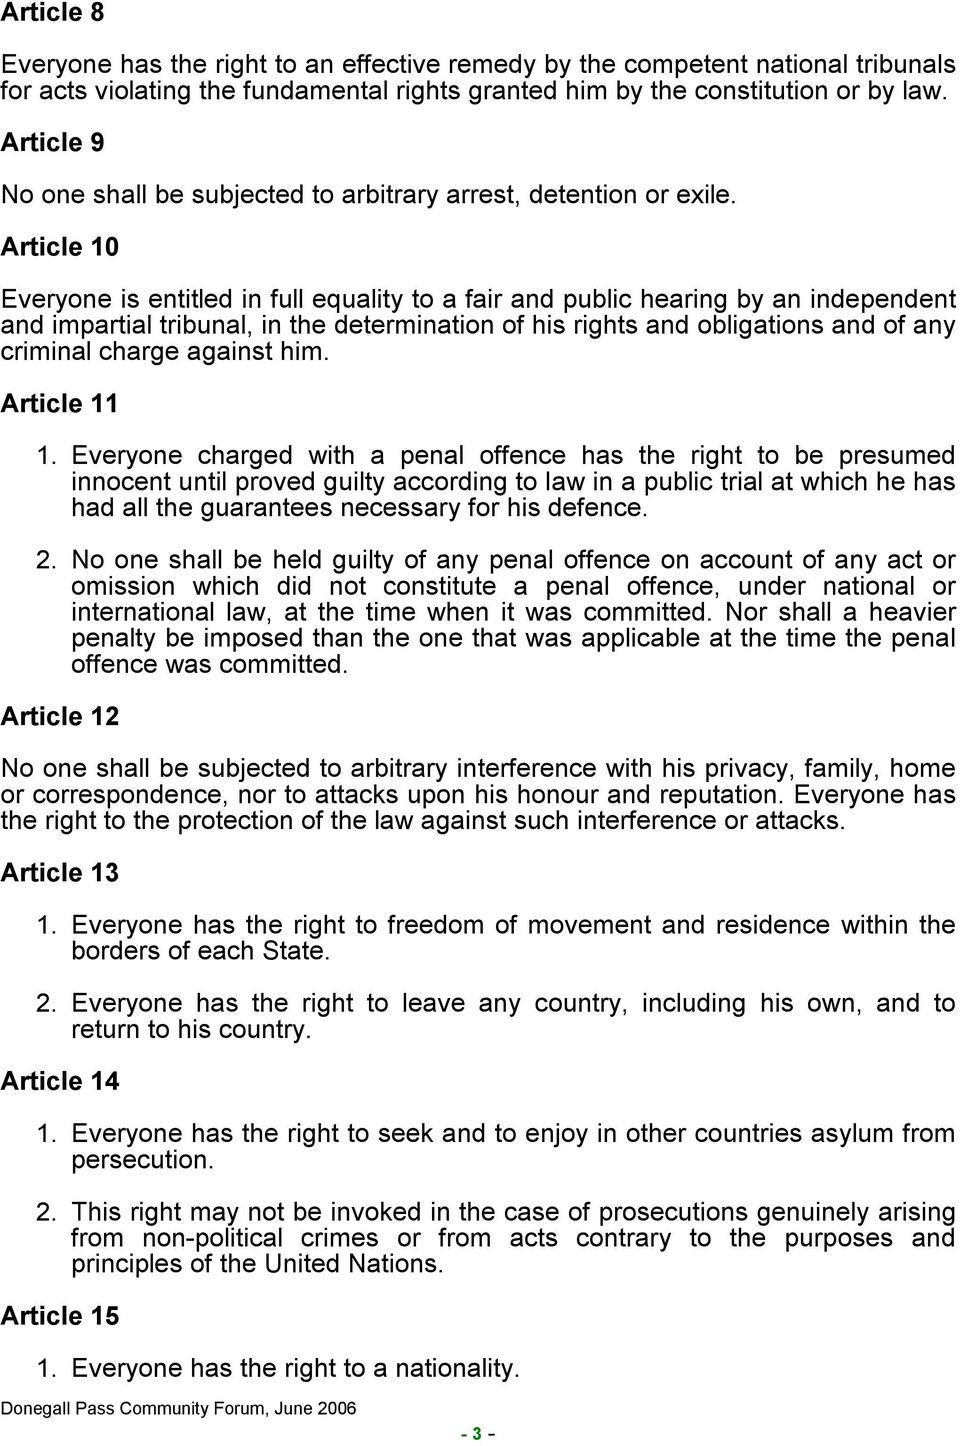 Article 10 Everyone is entitled in full equality to a fair and public hearing by an independent and impartial tribunal, in the determination of his rights and obligations and of any criminal charge